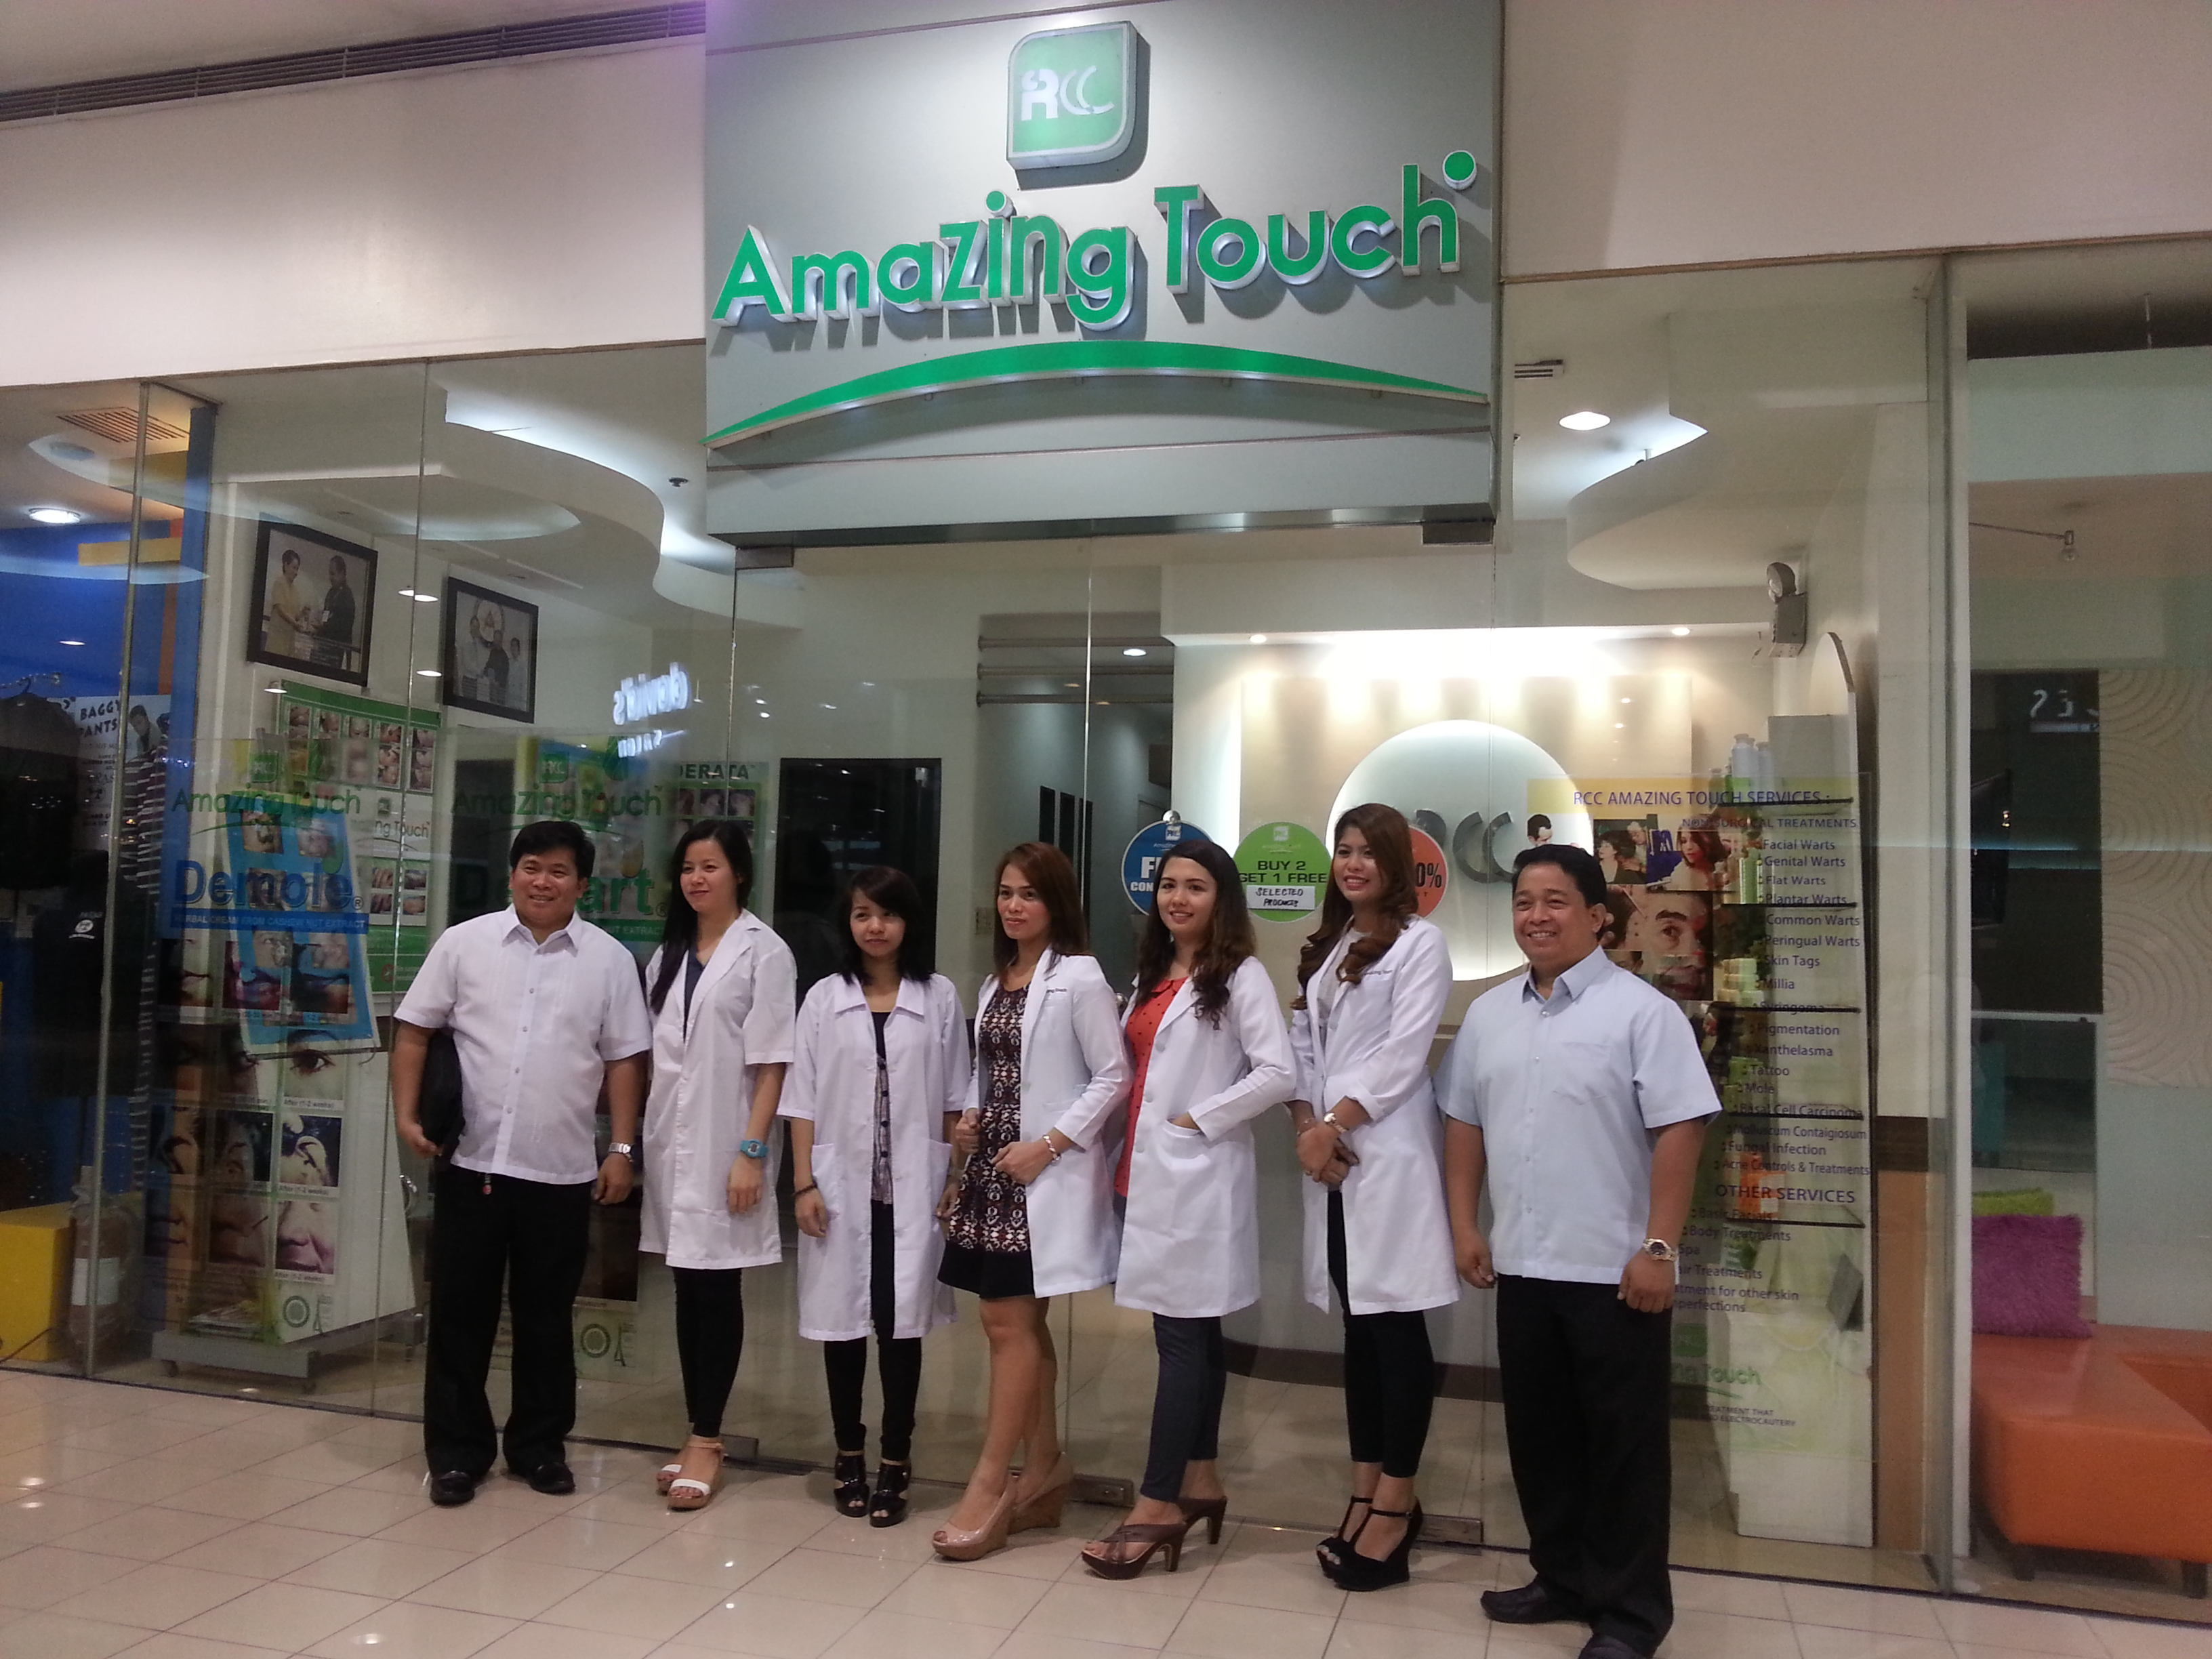 RCC Amazing Touch: Herbal Cautery to Remove Warts, Moles and Other